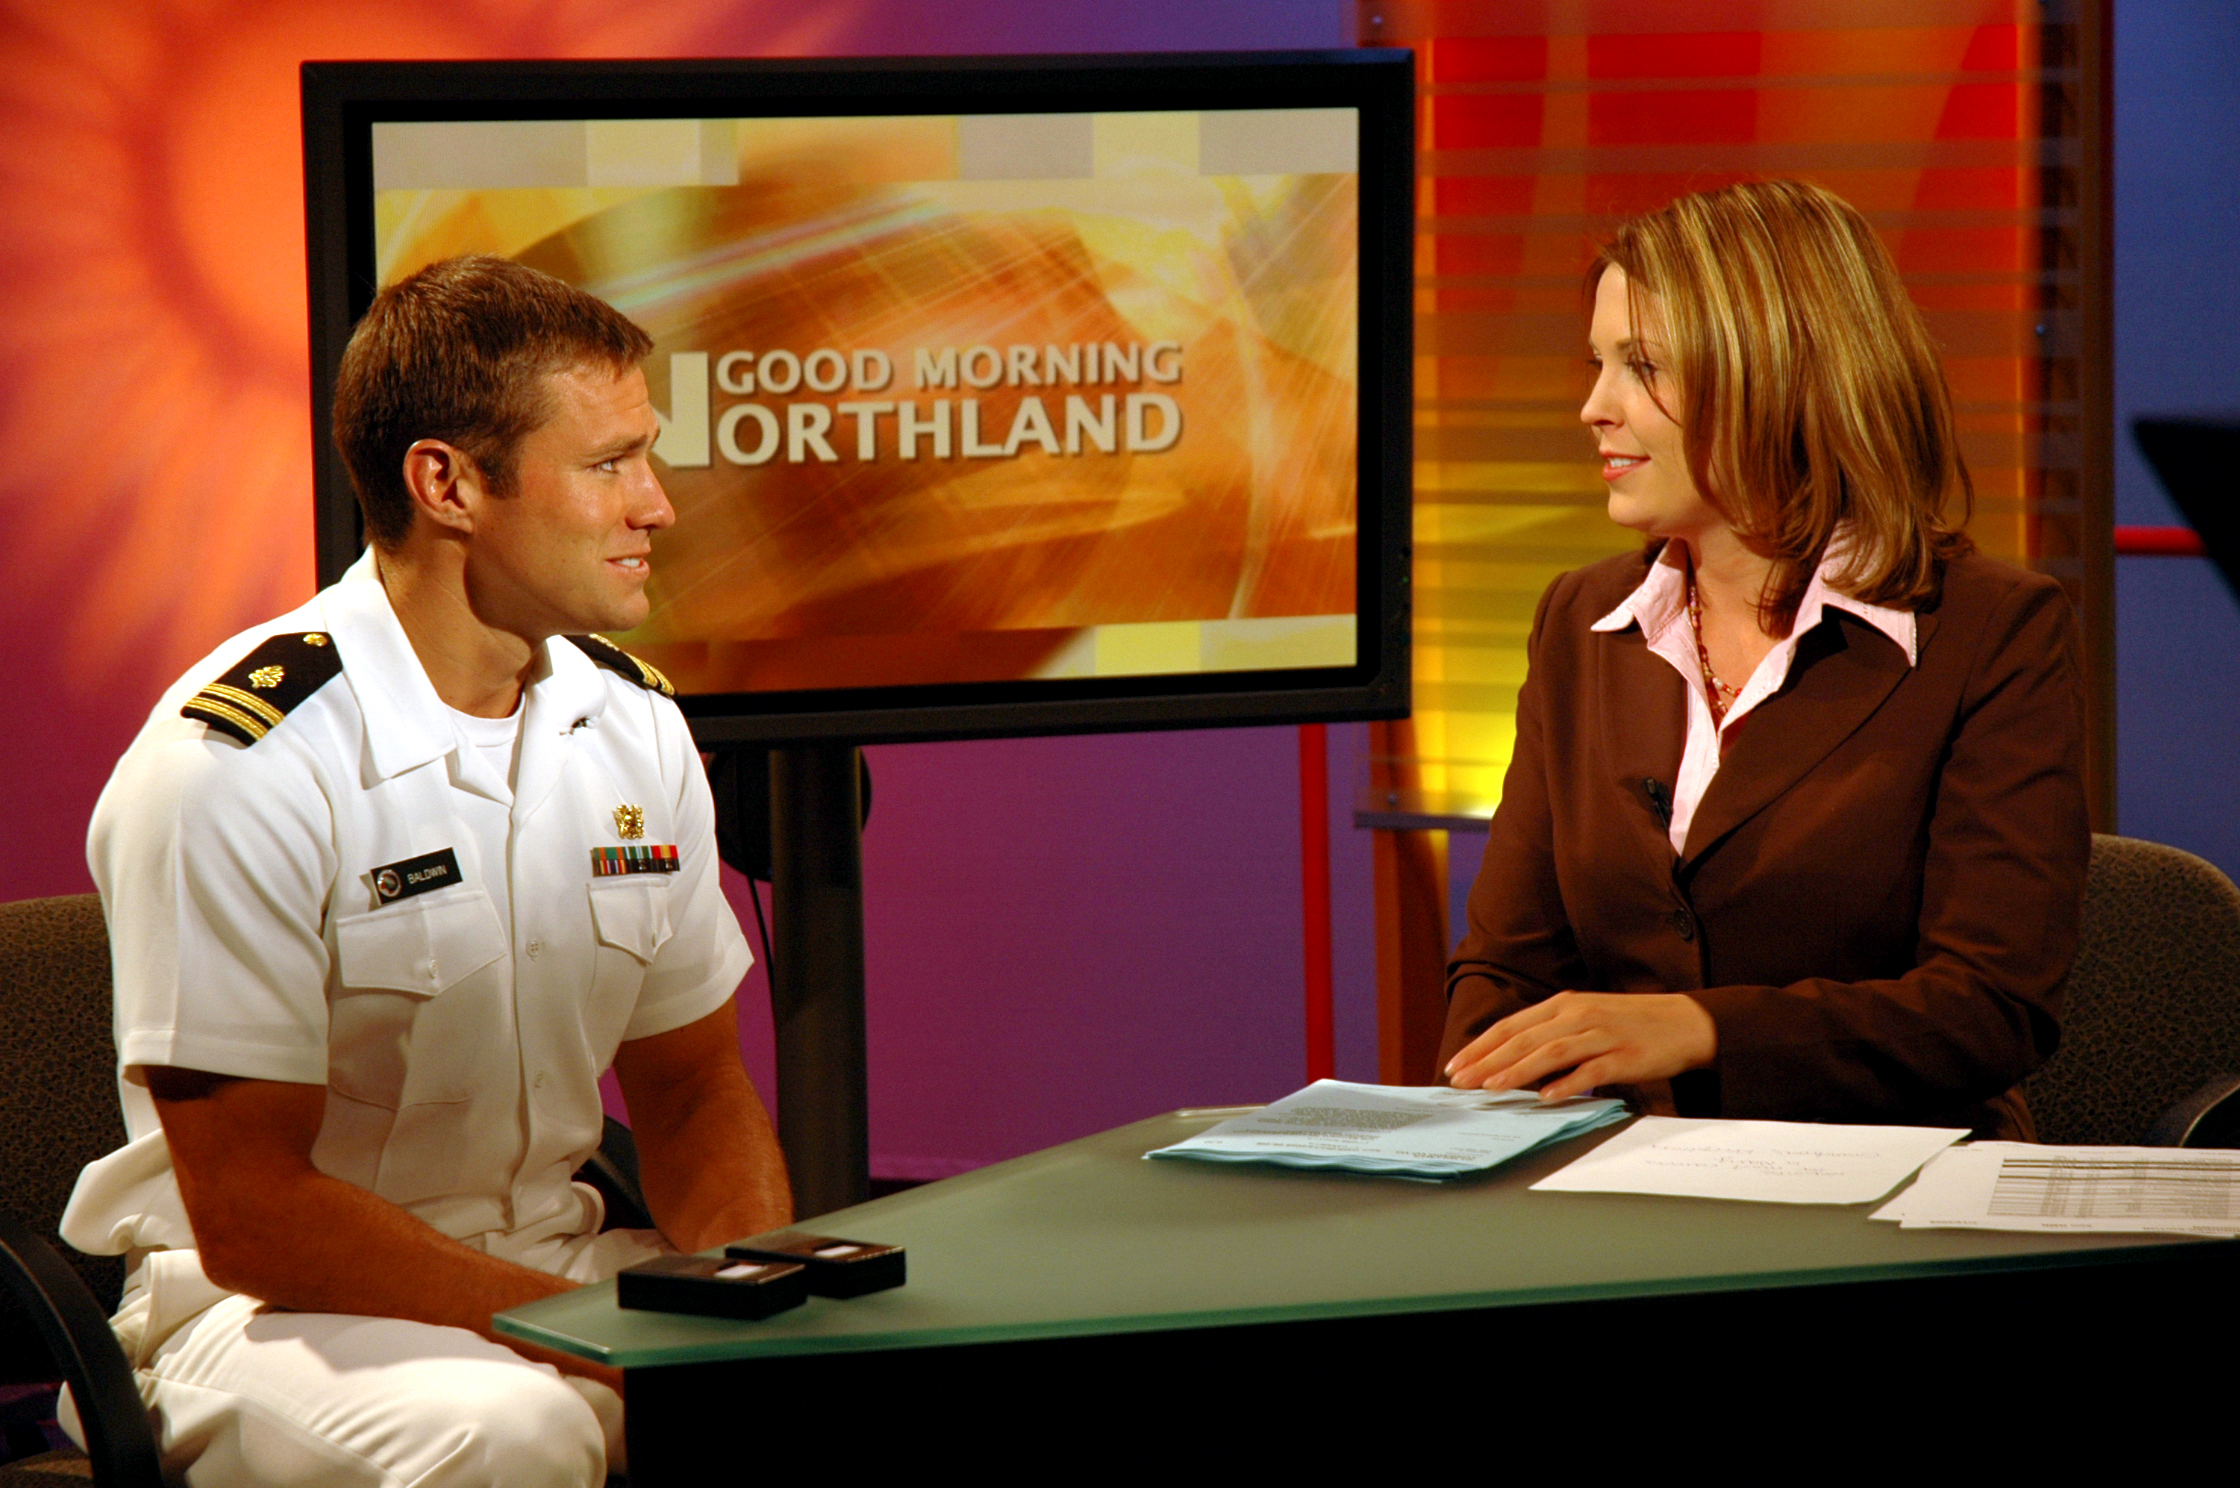 us navy 080714-n-7006n-002 lt. andrew baldwin, m.d., assigned to the navy bureau of medicine and surgery, speaks with cassie limpert about navy medicine and the medical opportunities the navy has to offer during an airing of th.jpg